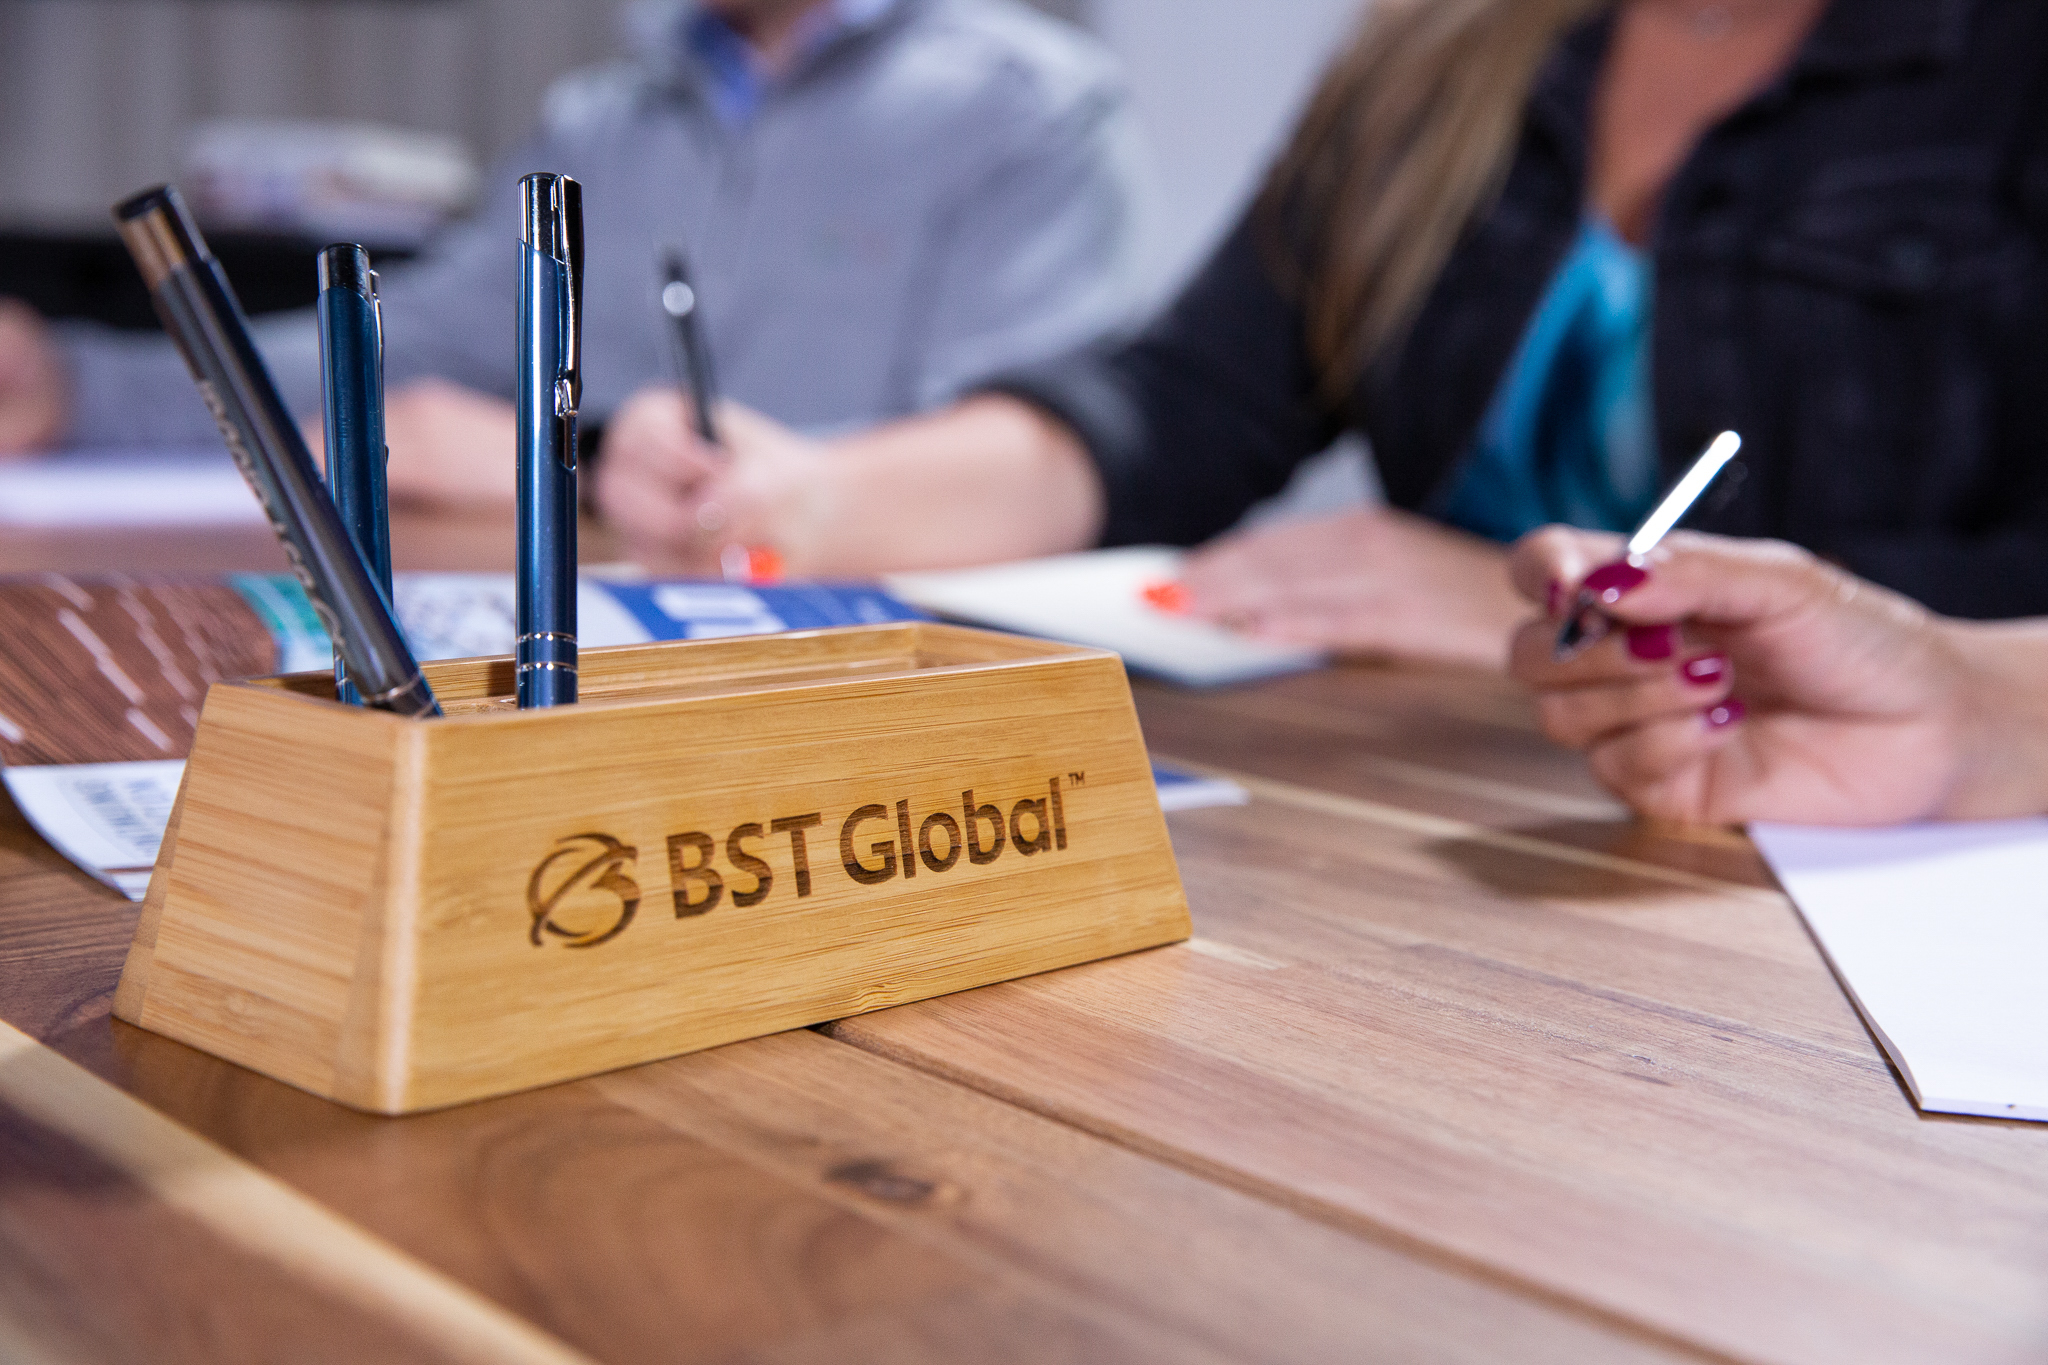 Press Release: Global ERP Solution Provider BST Global Announces Brand Evolution